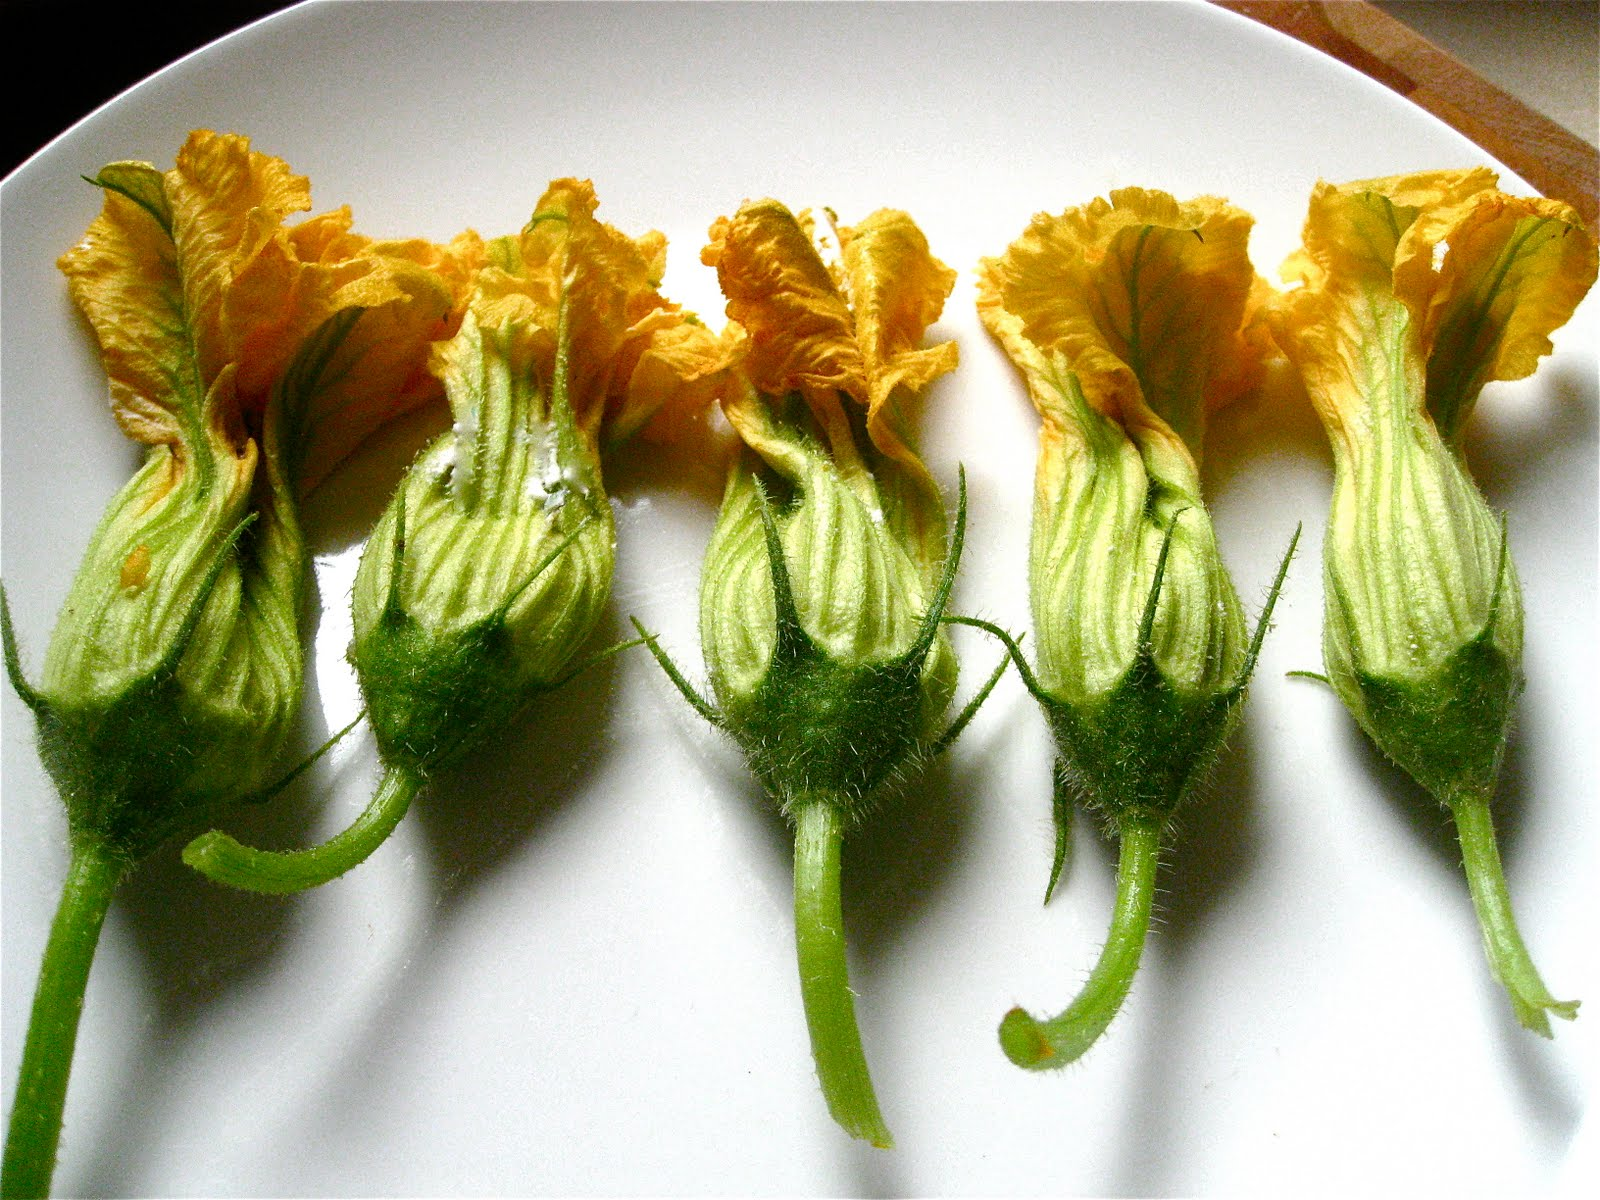 Stuffed Zucchini Blossoms | TO CATCH A COOK